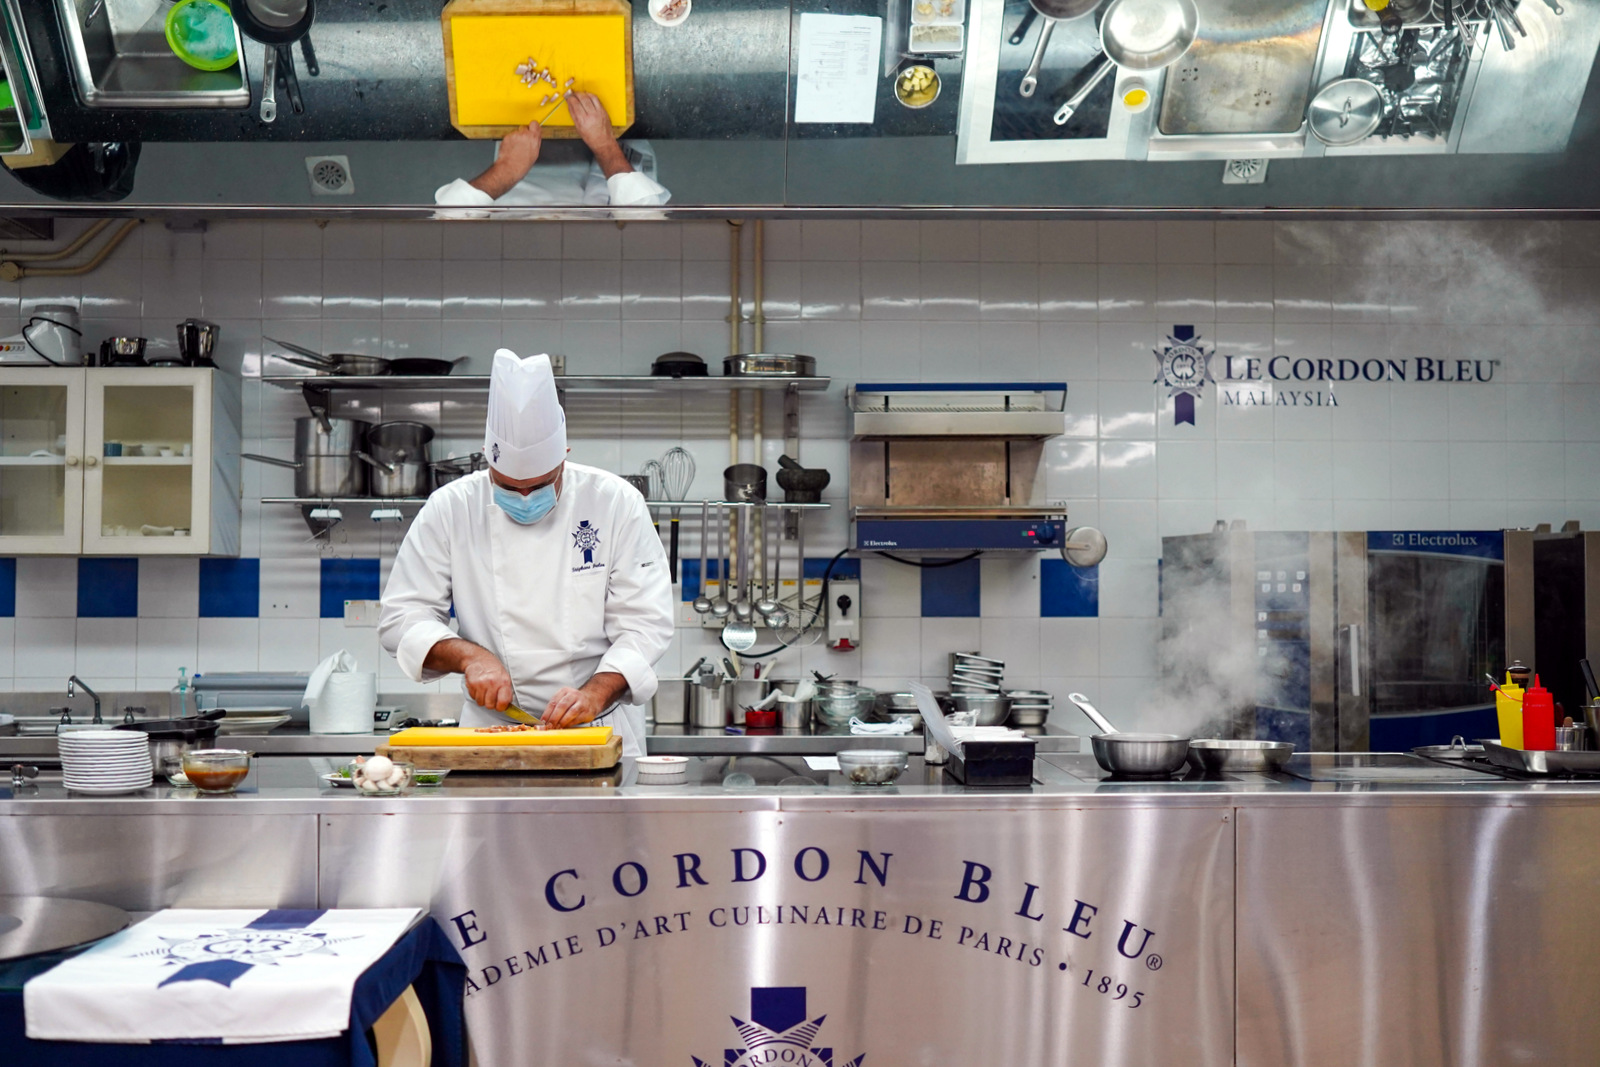 le cordon bleu malaysia: chef instructors share their favourite recipes for fish & snails